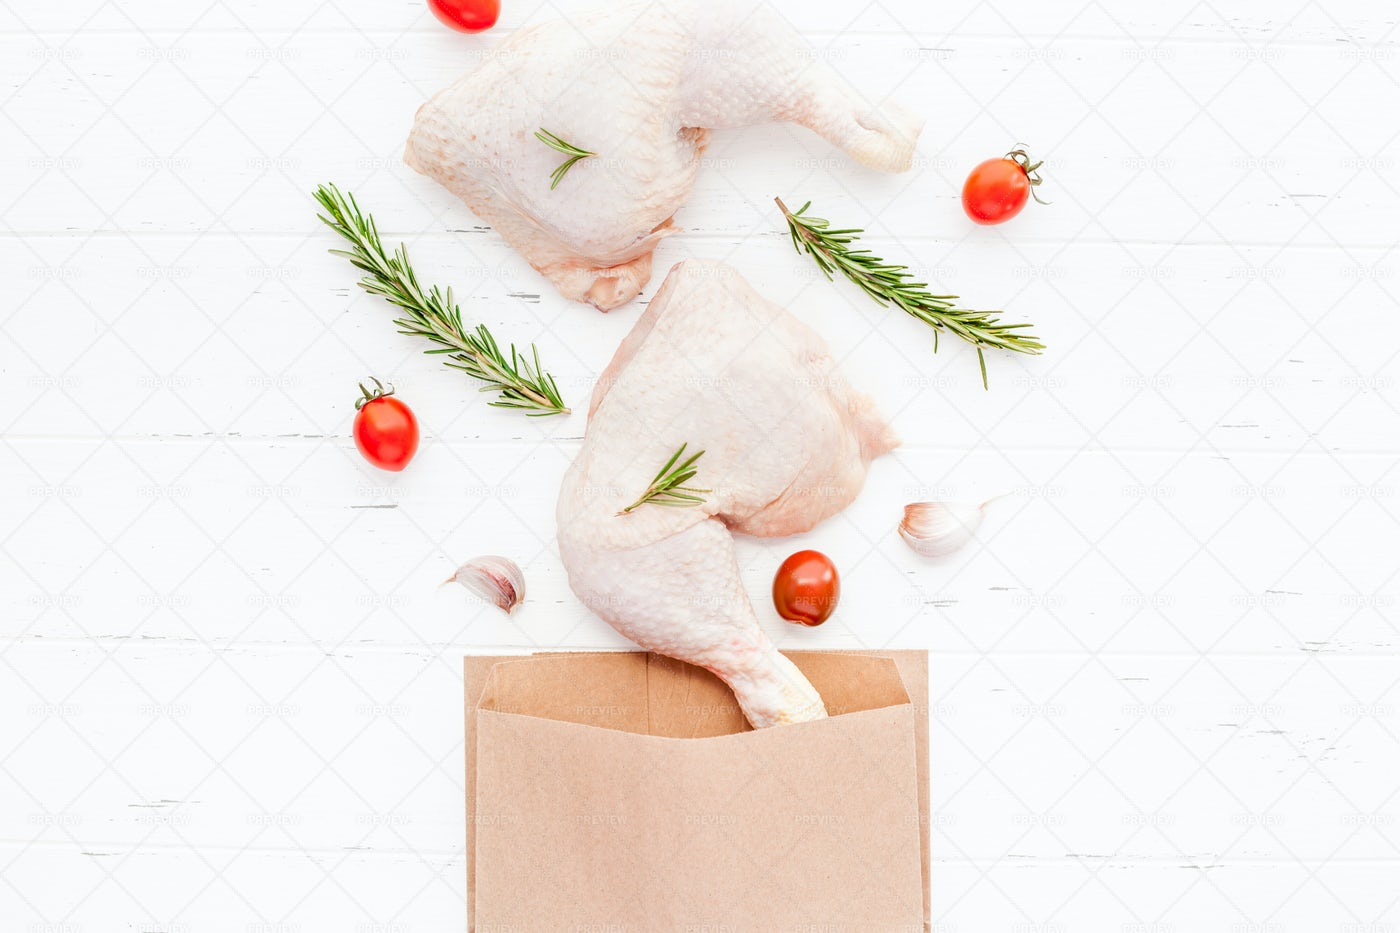 Raw Chicken Legs With Herbs: Stock Photos